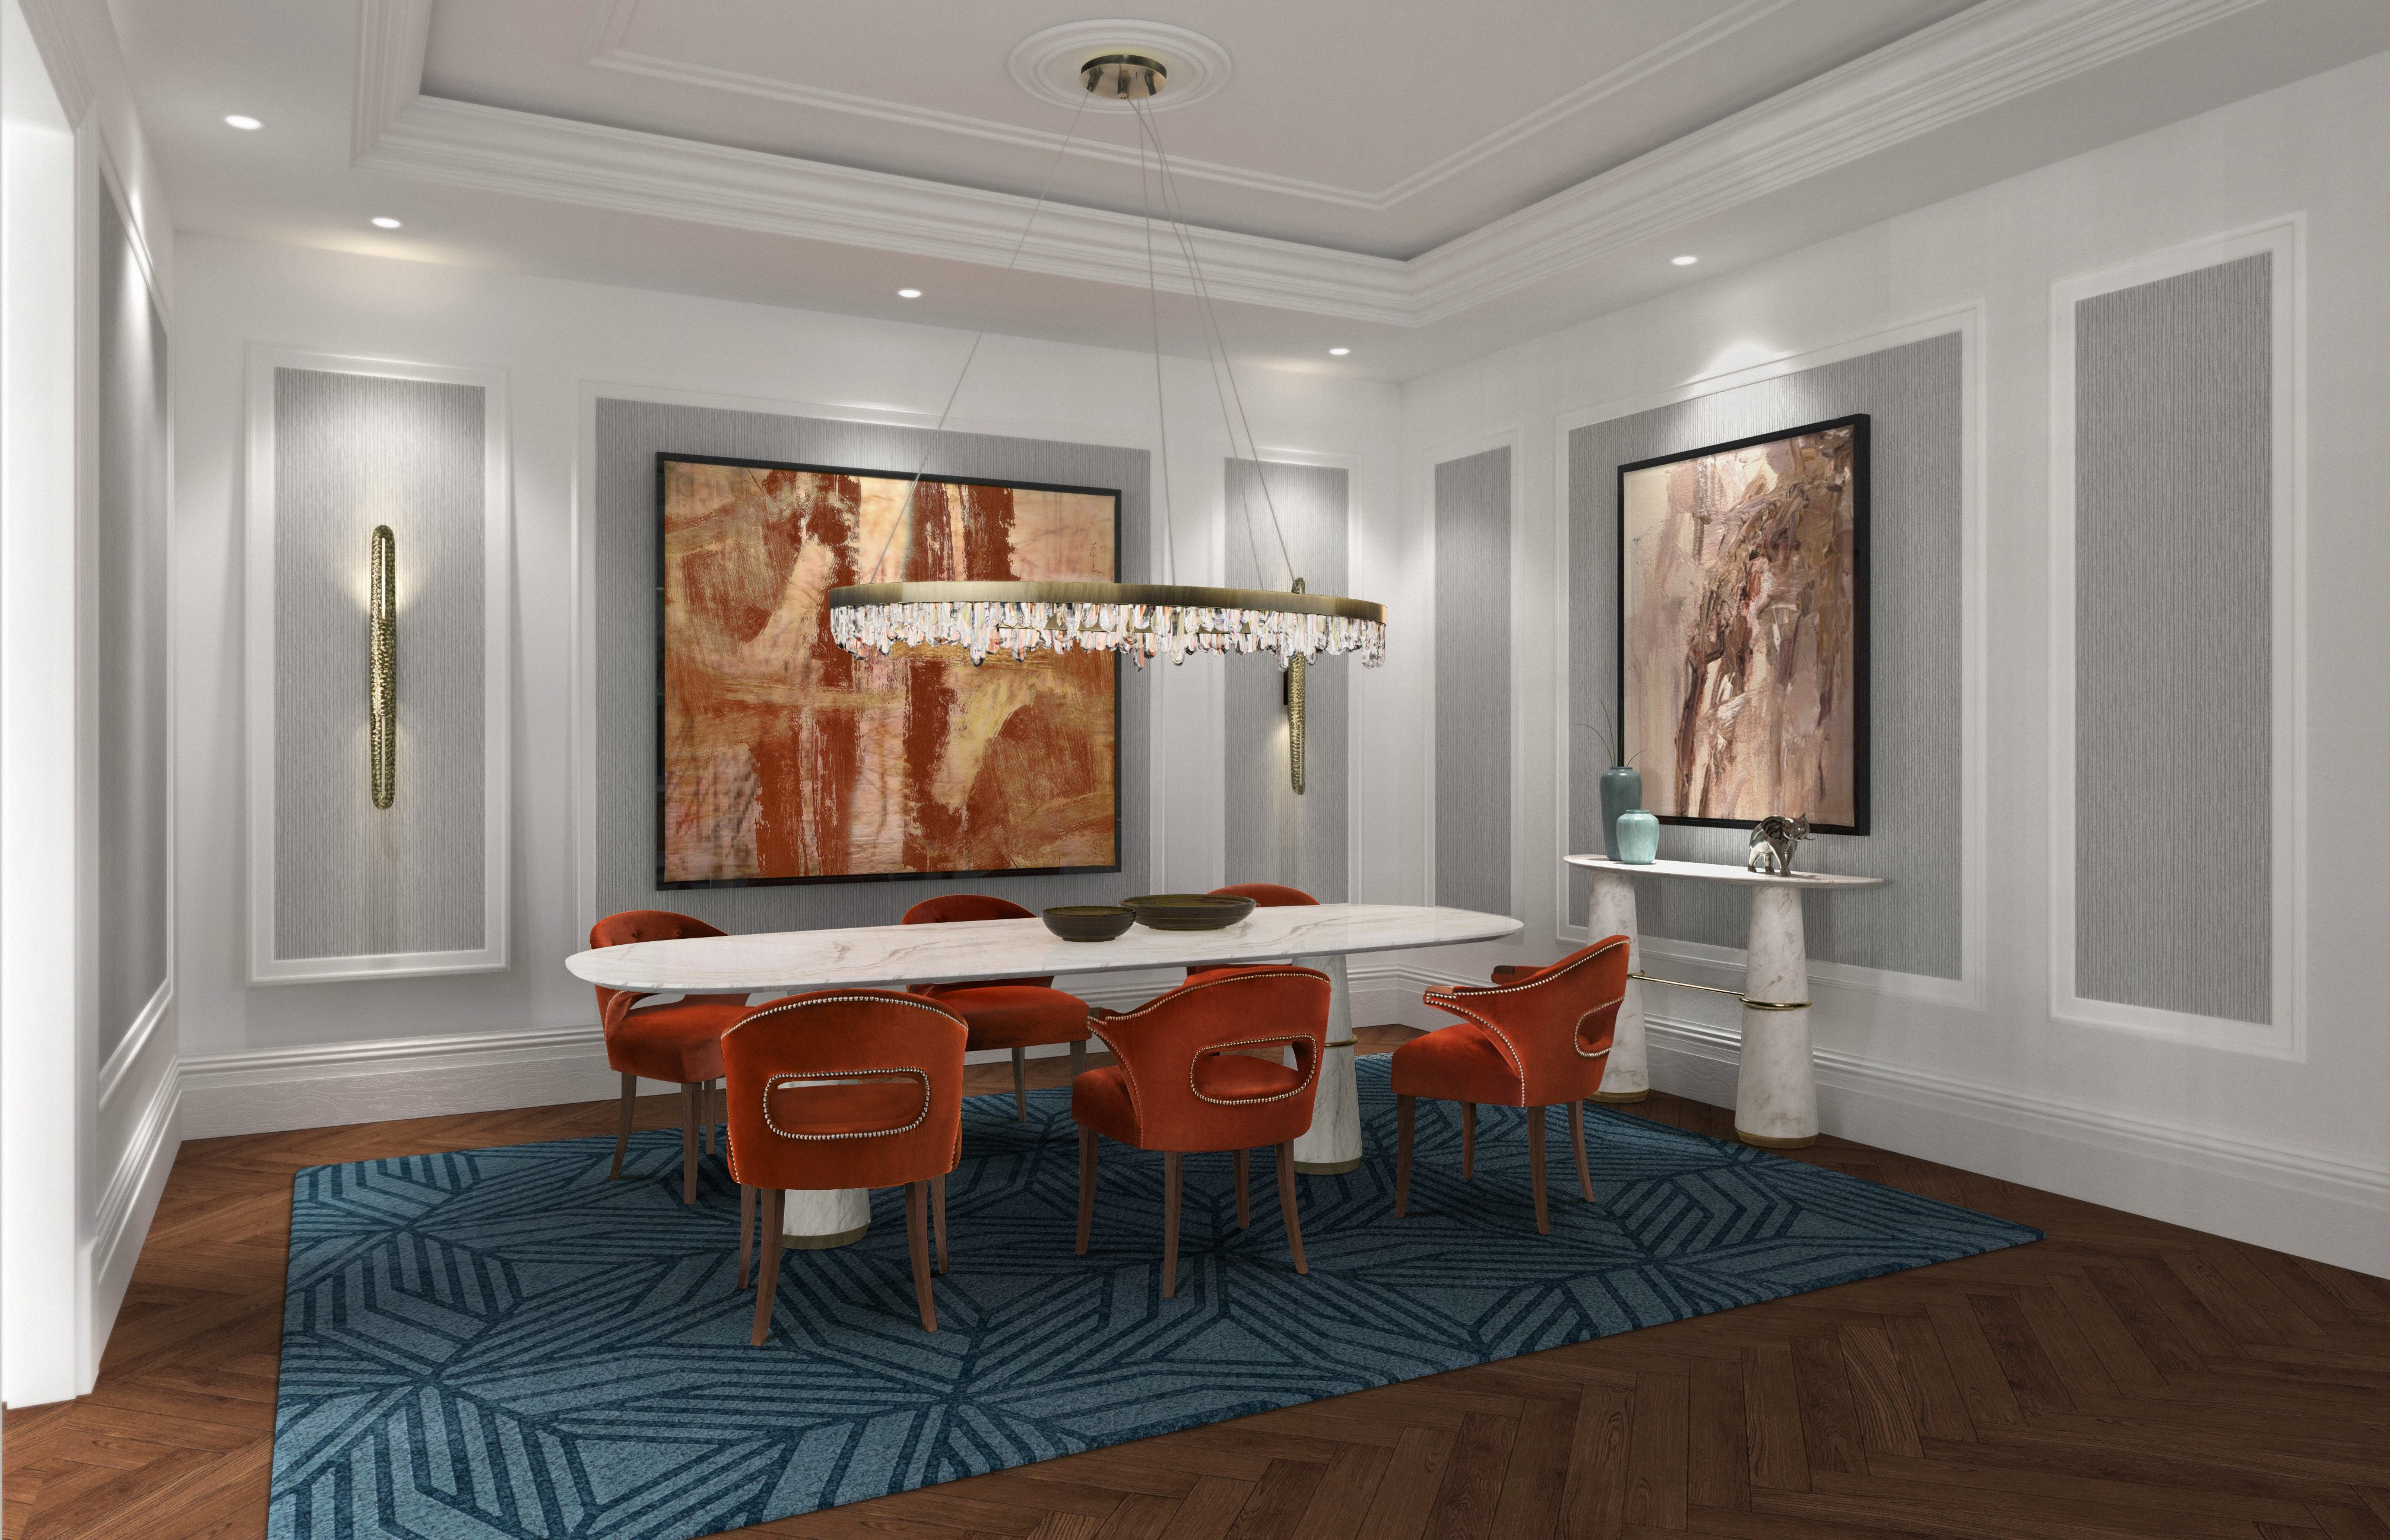 Dining Room Rugs: 5 Inspirations for 2020 dining room rugs Dining Room Rugs: 5 Inspirations for 2020 dining room 2